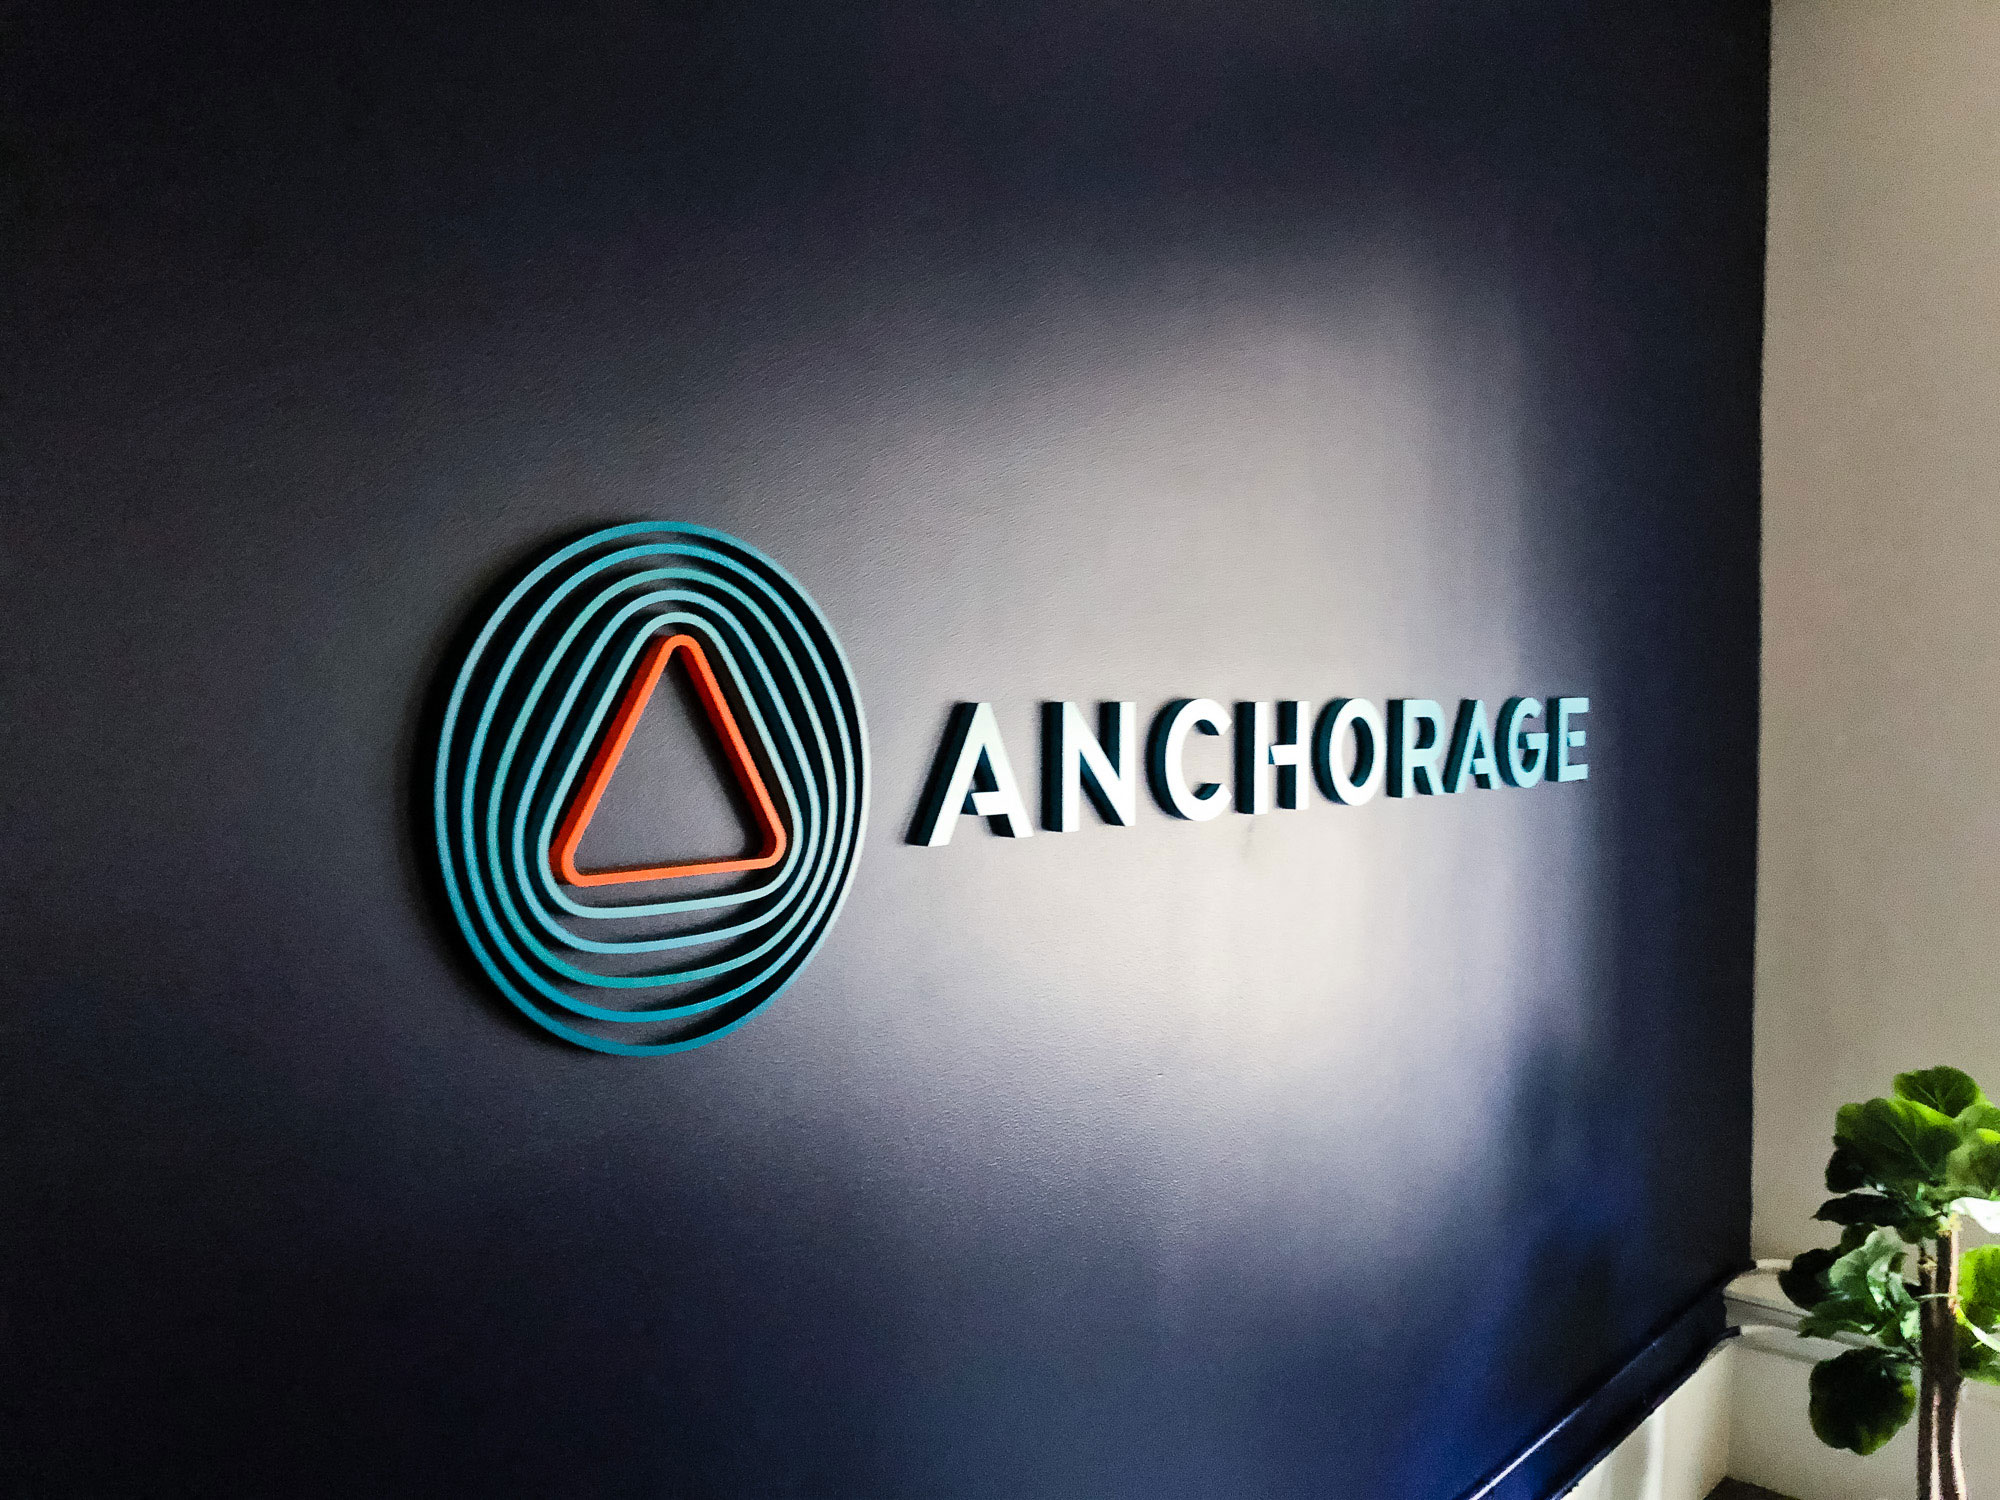 Painted, multi-color acrylic sign on a dark, navy blue wall for the lobby of Anchorage, a San Francisco-based company focused on creating custody solutions for the cryptocurrency ecosystem.